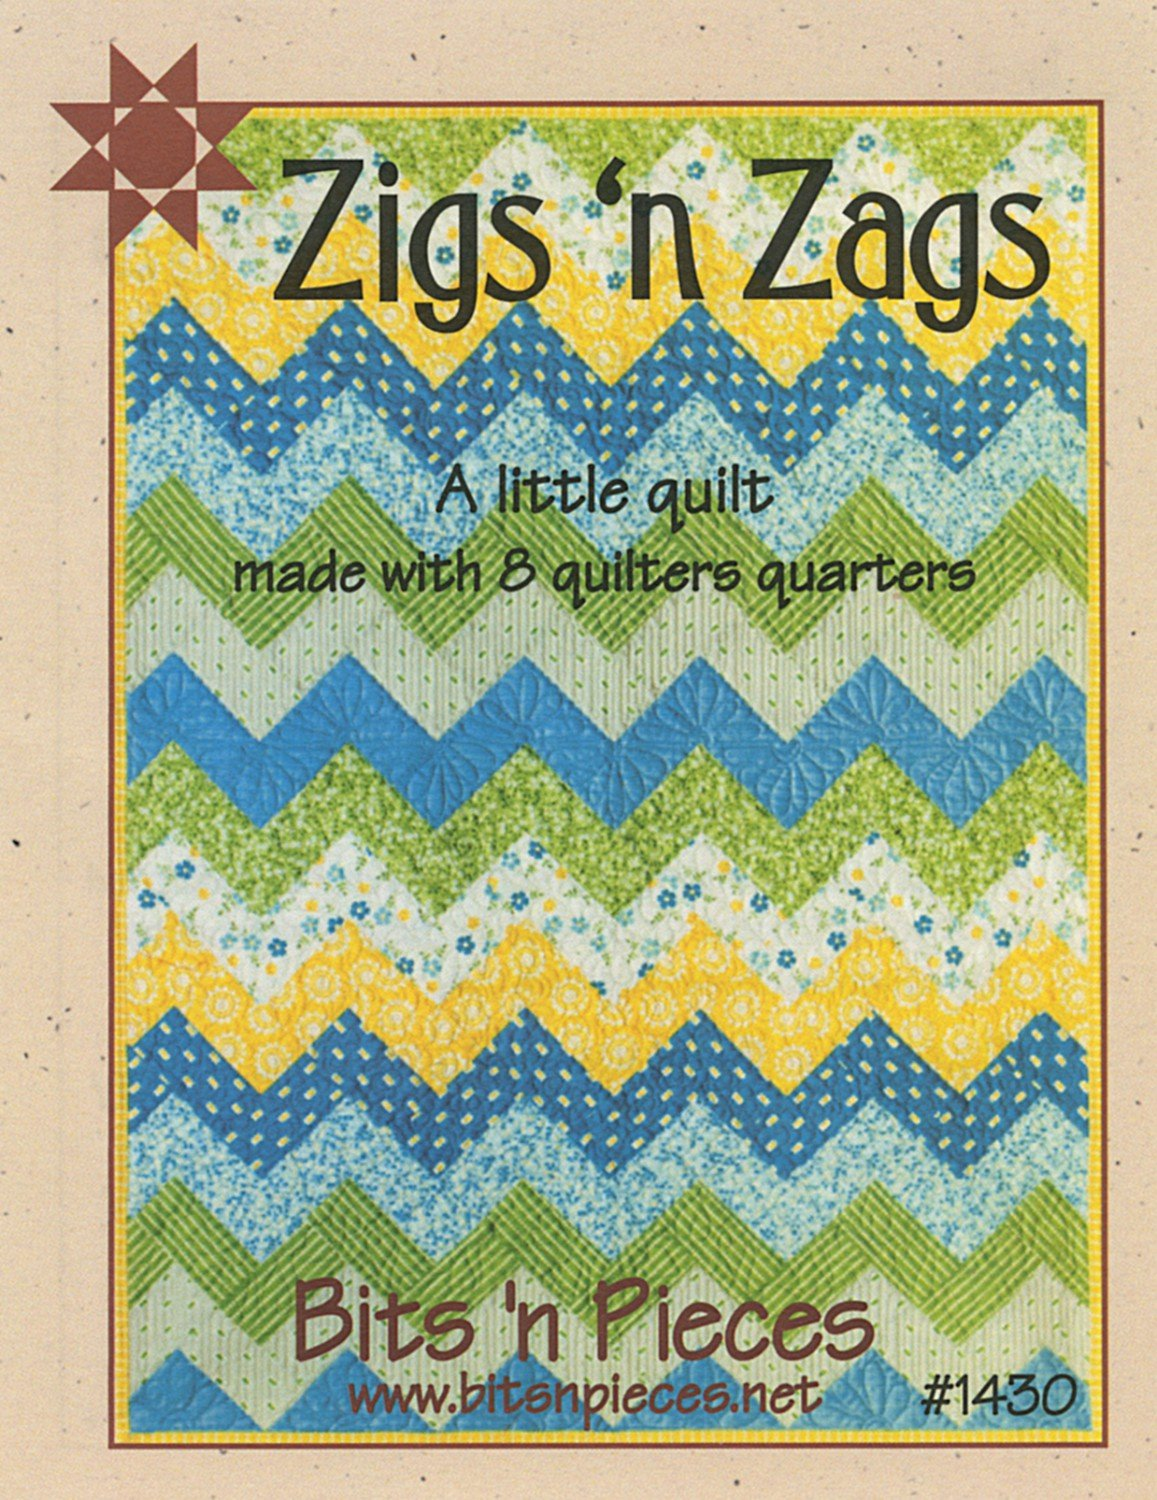 Bits 'N Pieces...Zigs and Zags